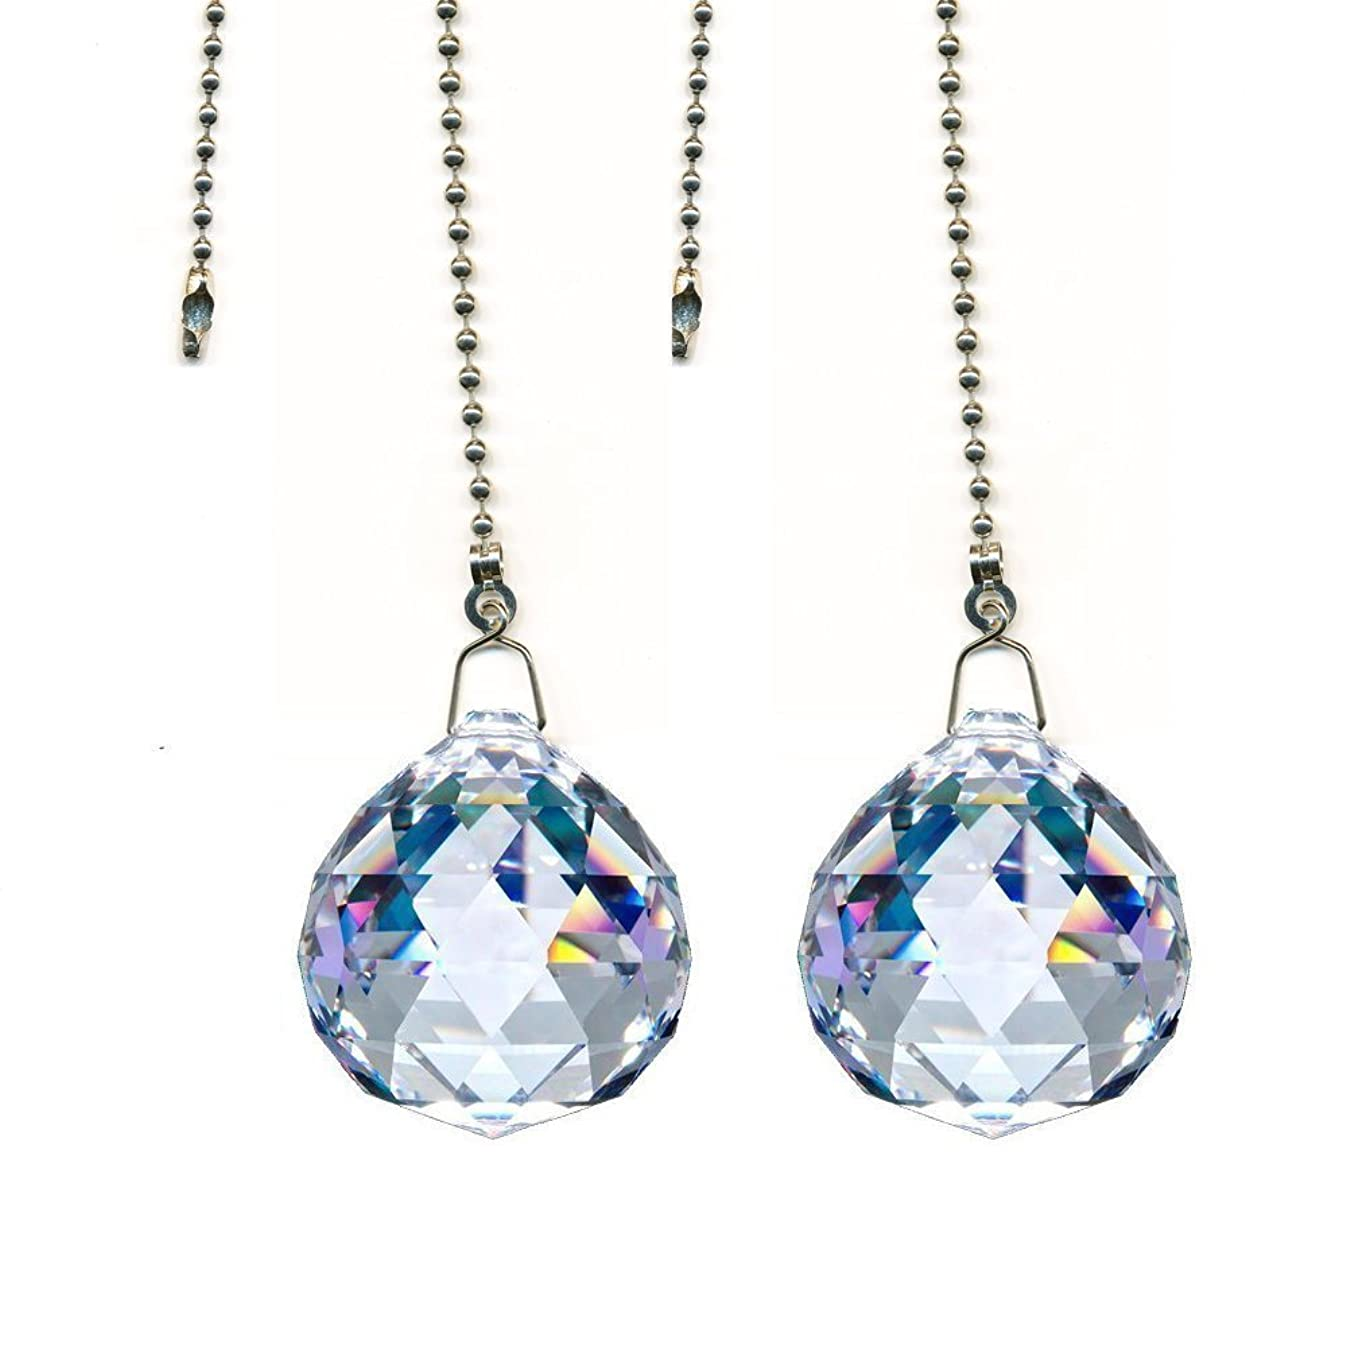 Gusnilo Magnificent Crystal 20mm Clear Crystal Ball Prism 4 Pieces Dazzling Crystal Ceiling FAN Pull Chains